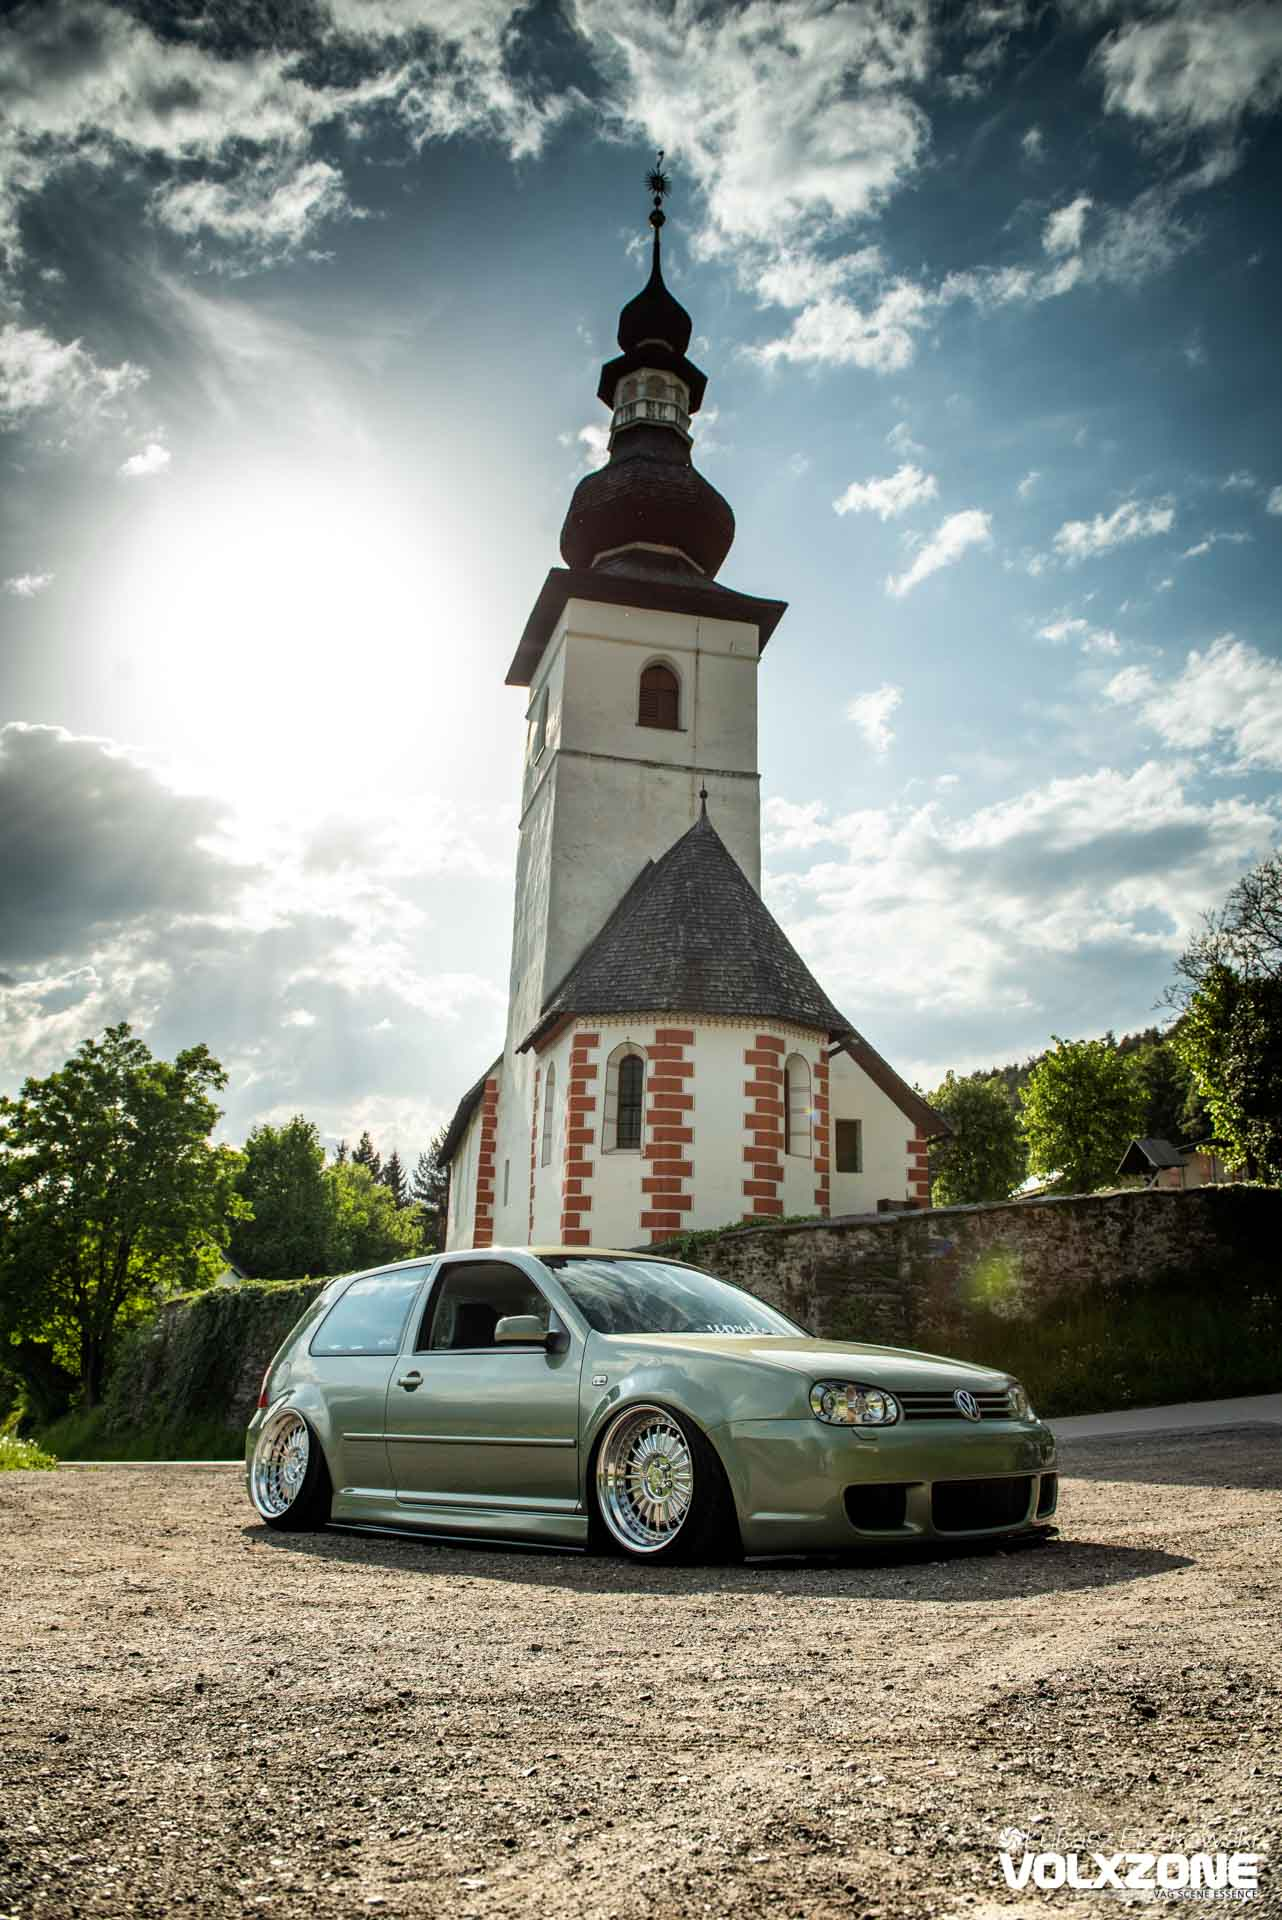 Swiss Made VW Golf MK4 R32